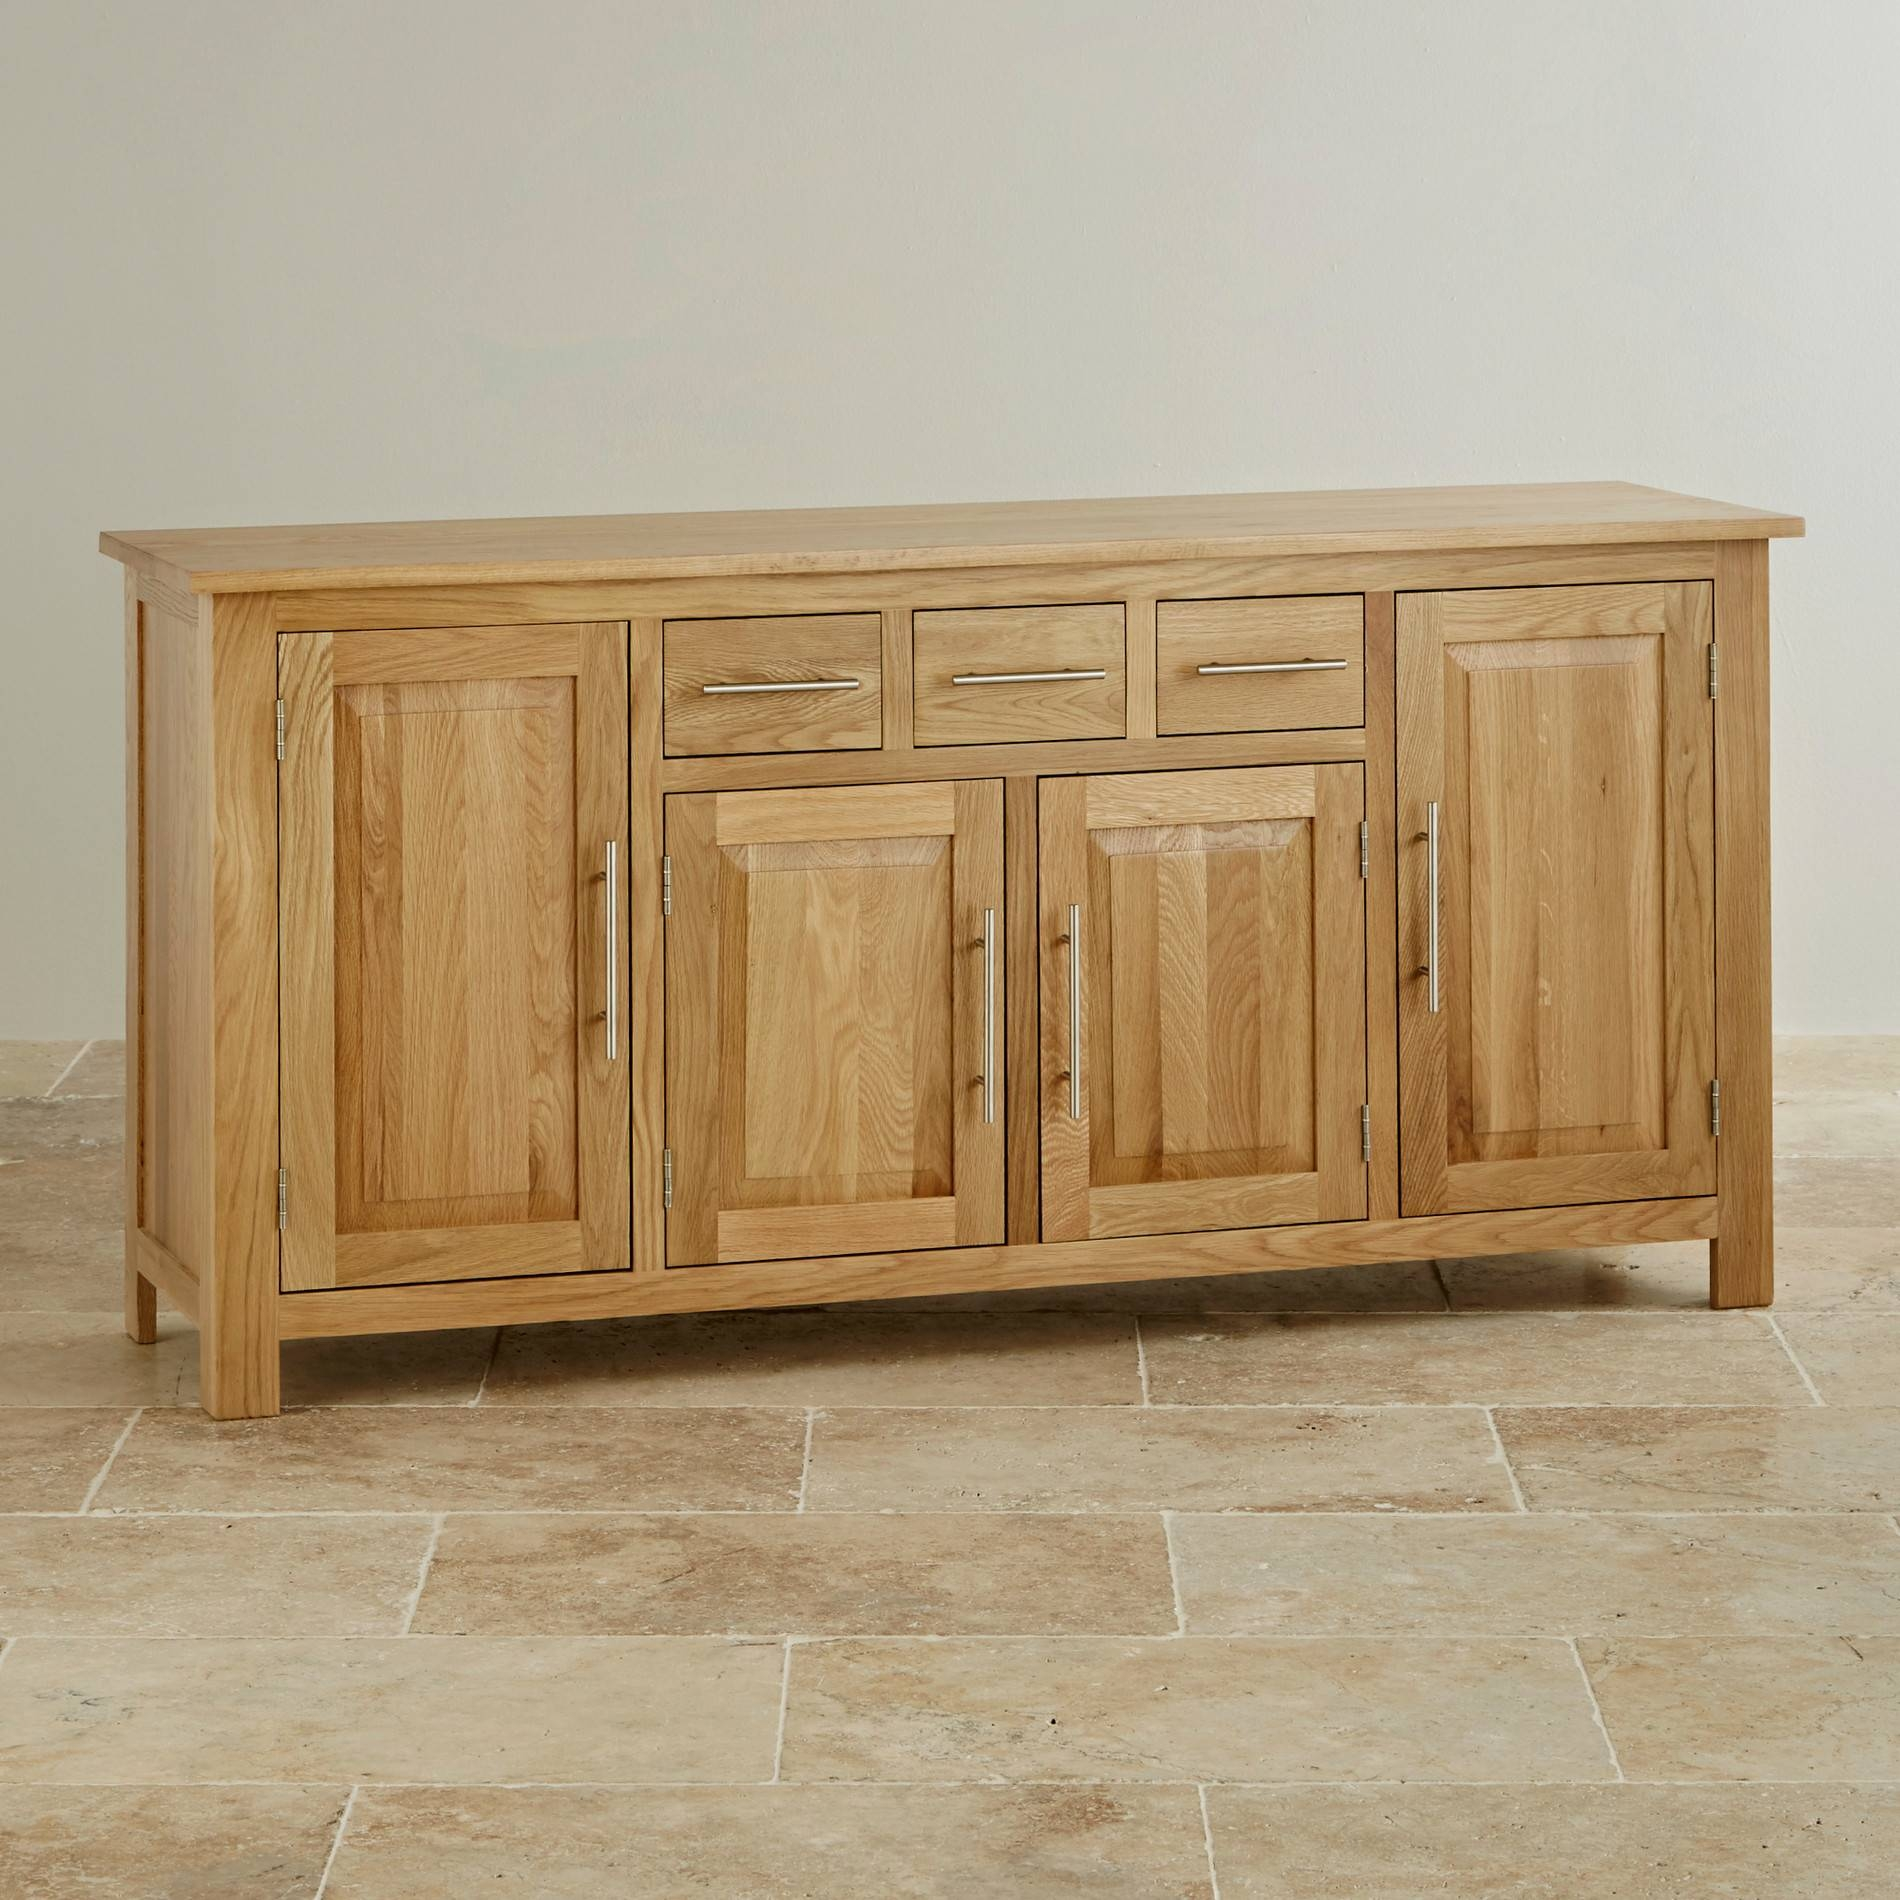 Inspiration about Rivermead Natural Solid Oak Large Sideboard | Oak Furniture Land Throughout Current Oak Furniture Land Sideboards (#4 of 15)